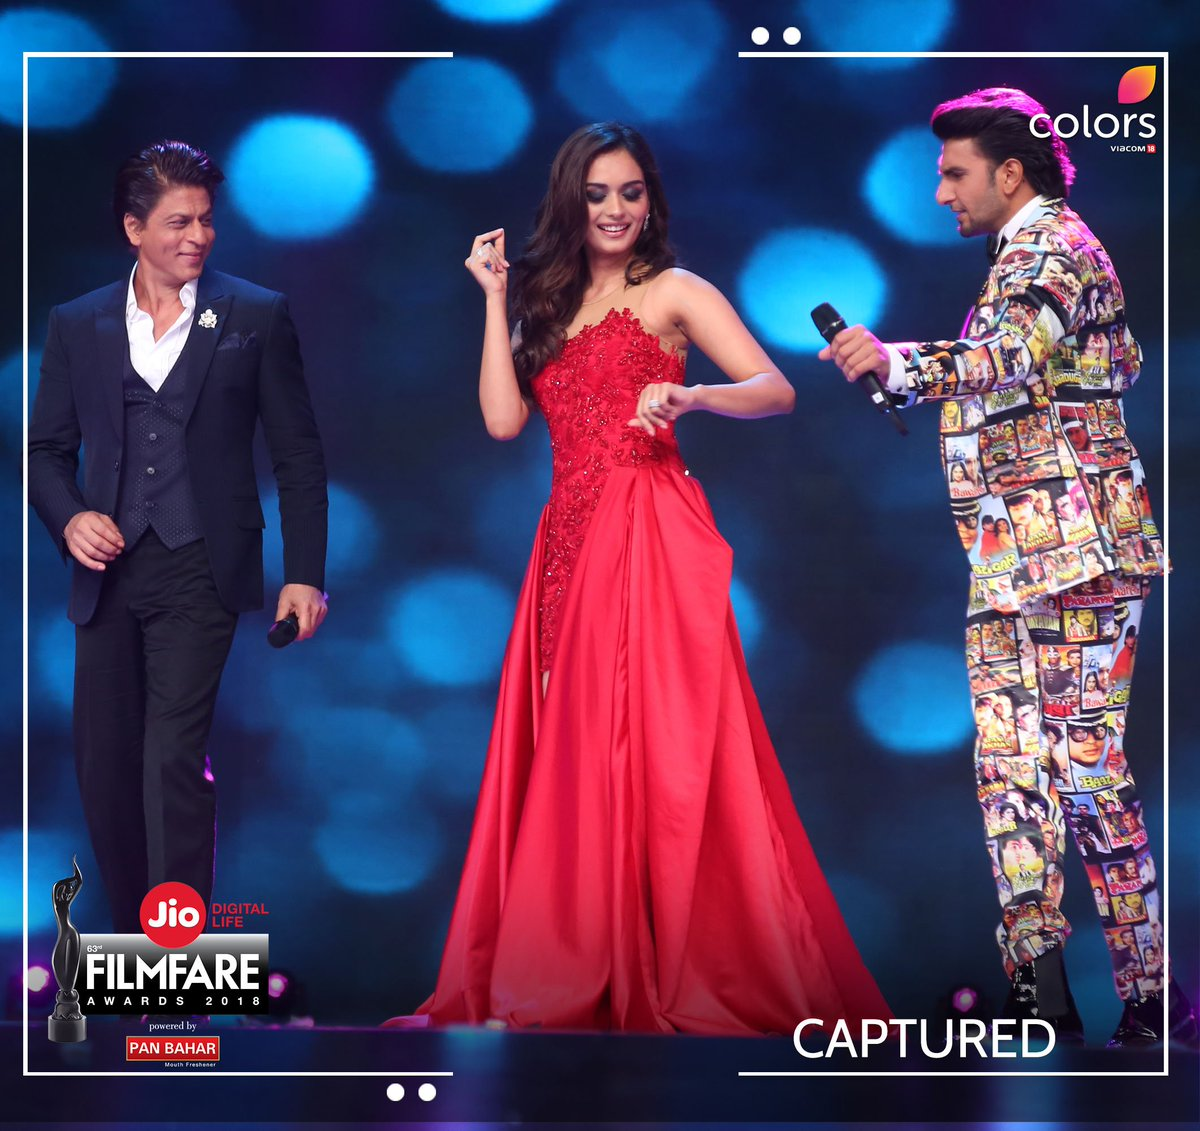 test Twitter Media - Miss World @ManushiChhillar joins Bollywood superstars @iamsrk & @RanveerOfficial for a fun moment on stage! Watch all the fun unfold on #JioFilmfareAwards this Sunday, 25th Feb at 8PM! https://t.co/6RIyC1iiHB